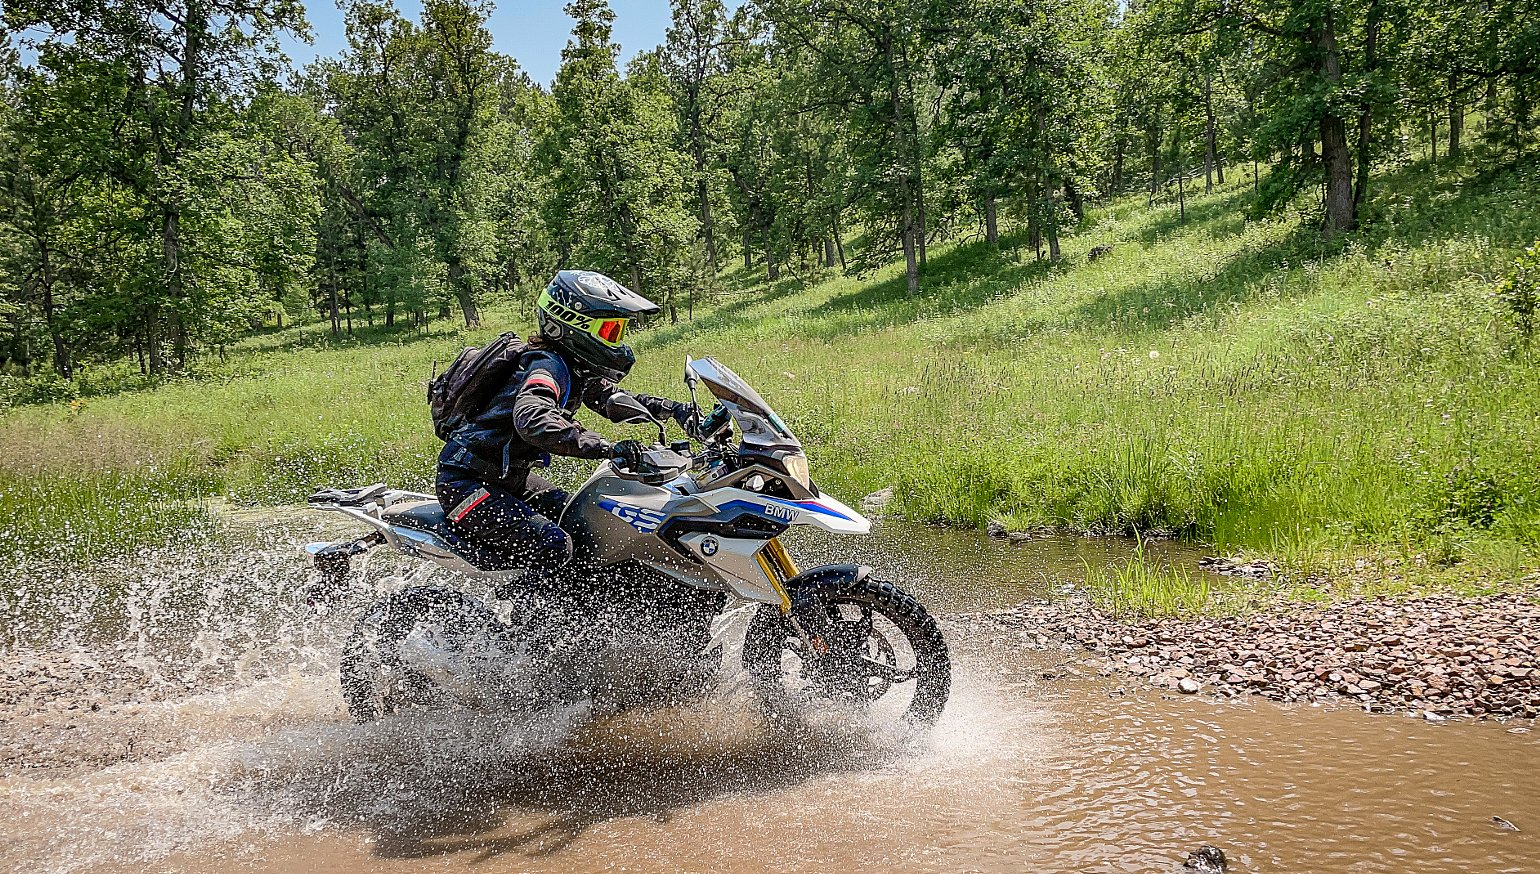 A first-timer goes ADV riding at the Get On! Adventure Festival